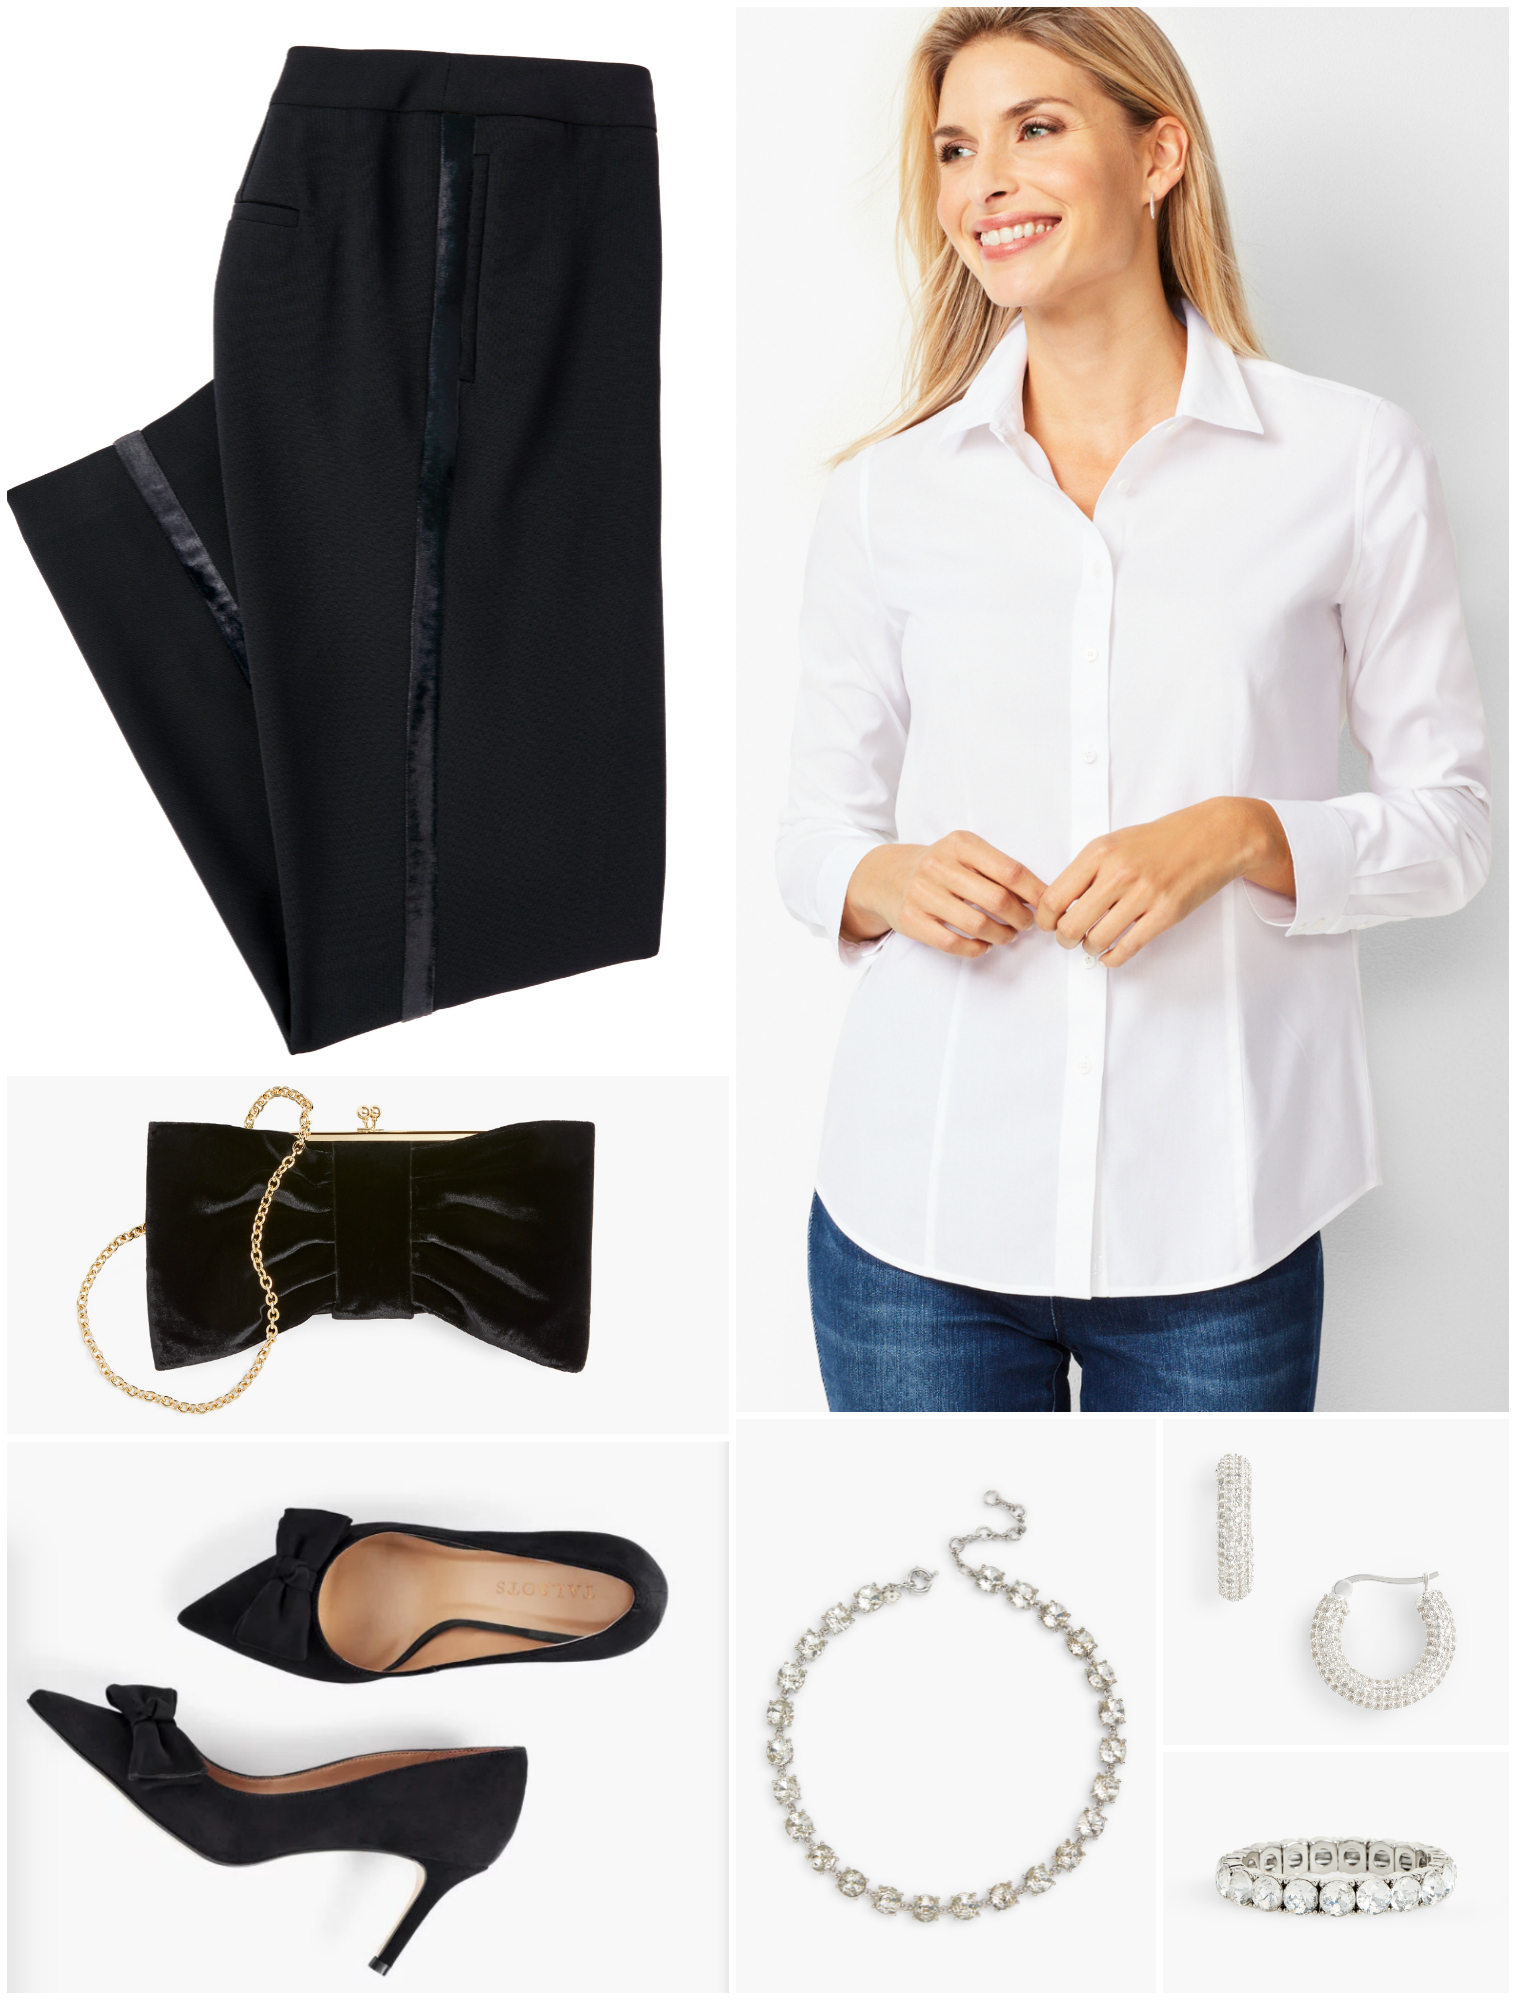 There is nothing more classic than a crisp white shirt.  Cuff the sleeves, pop the collar, and add plenty of sparkle and a pair of heels to keep it from looking like a uniform.